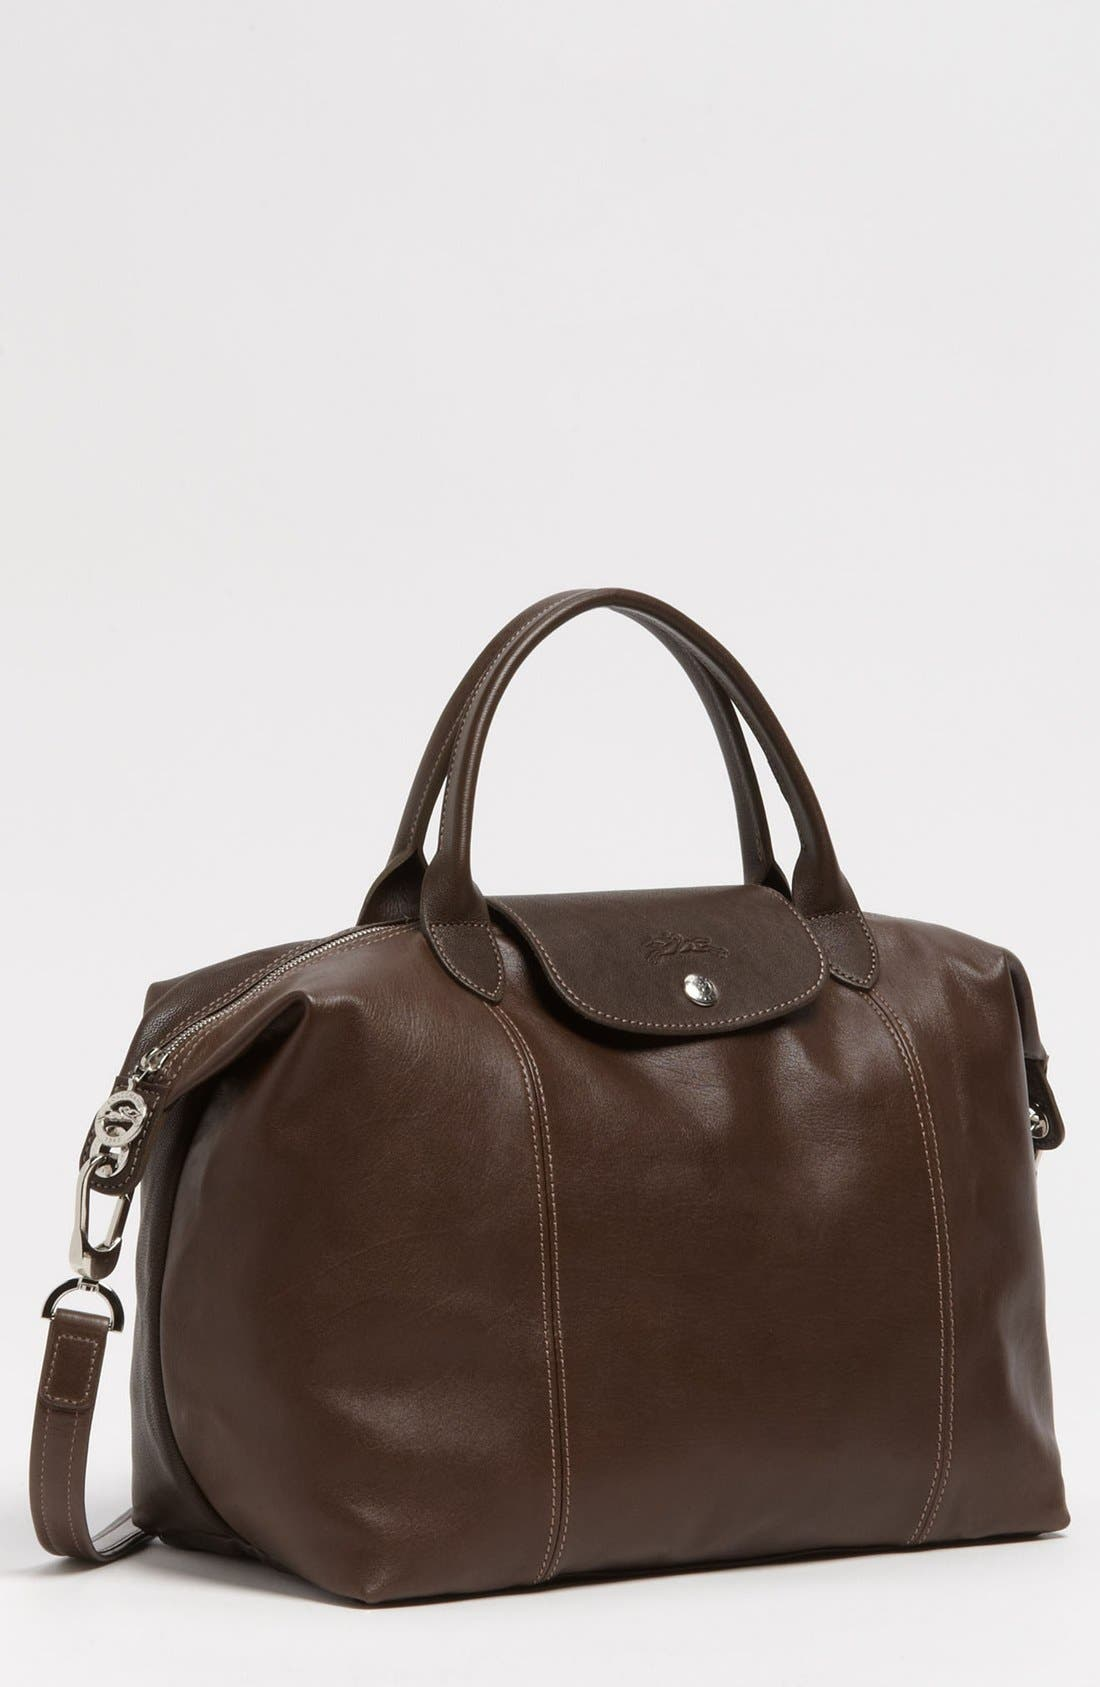 Medium 'Le Pliage Cuir' Leather Top Handle Tote,                             Main thumbnail 11, color,